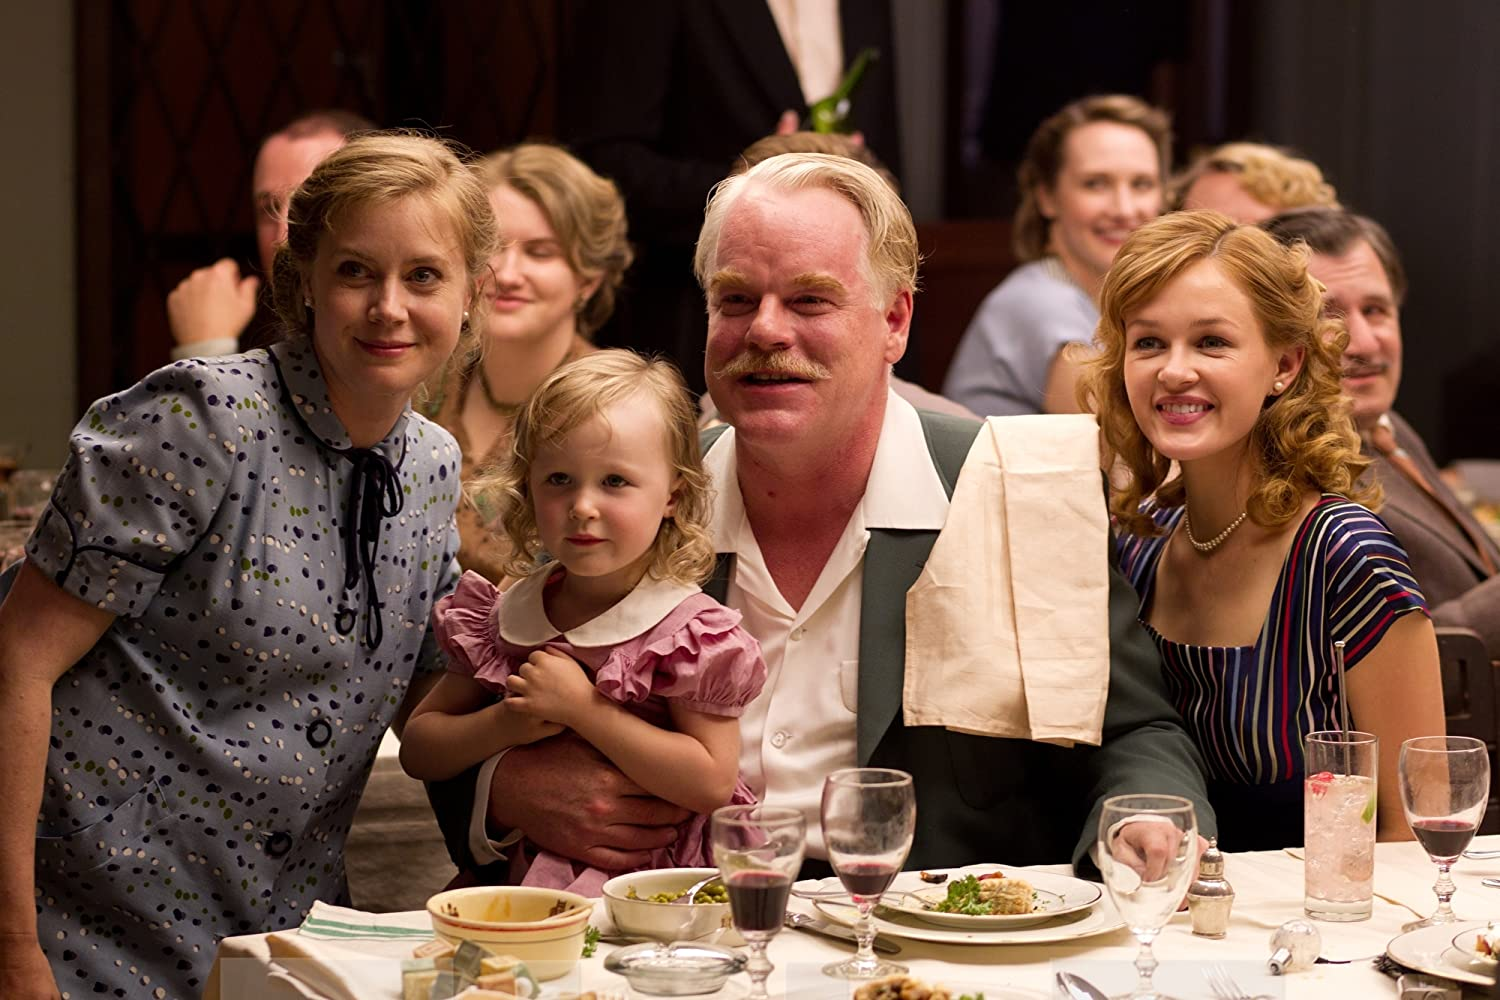 Philip Seymour Hoffman and Amy Adams in The Master (2012)